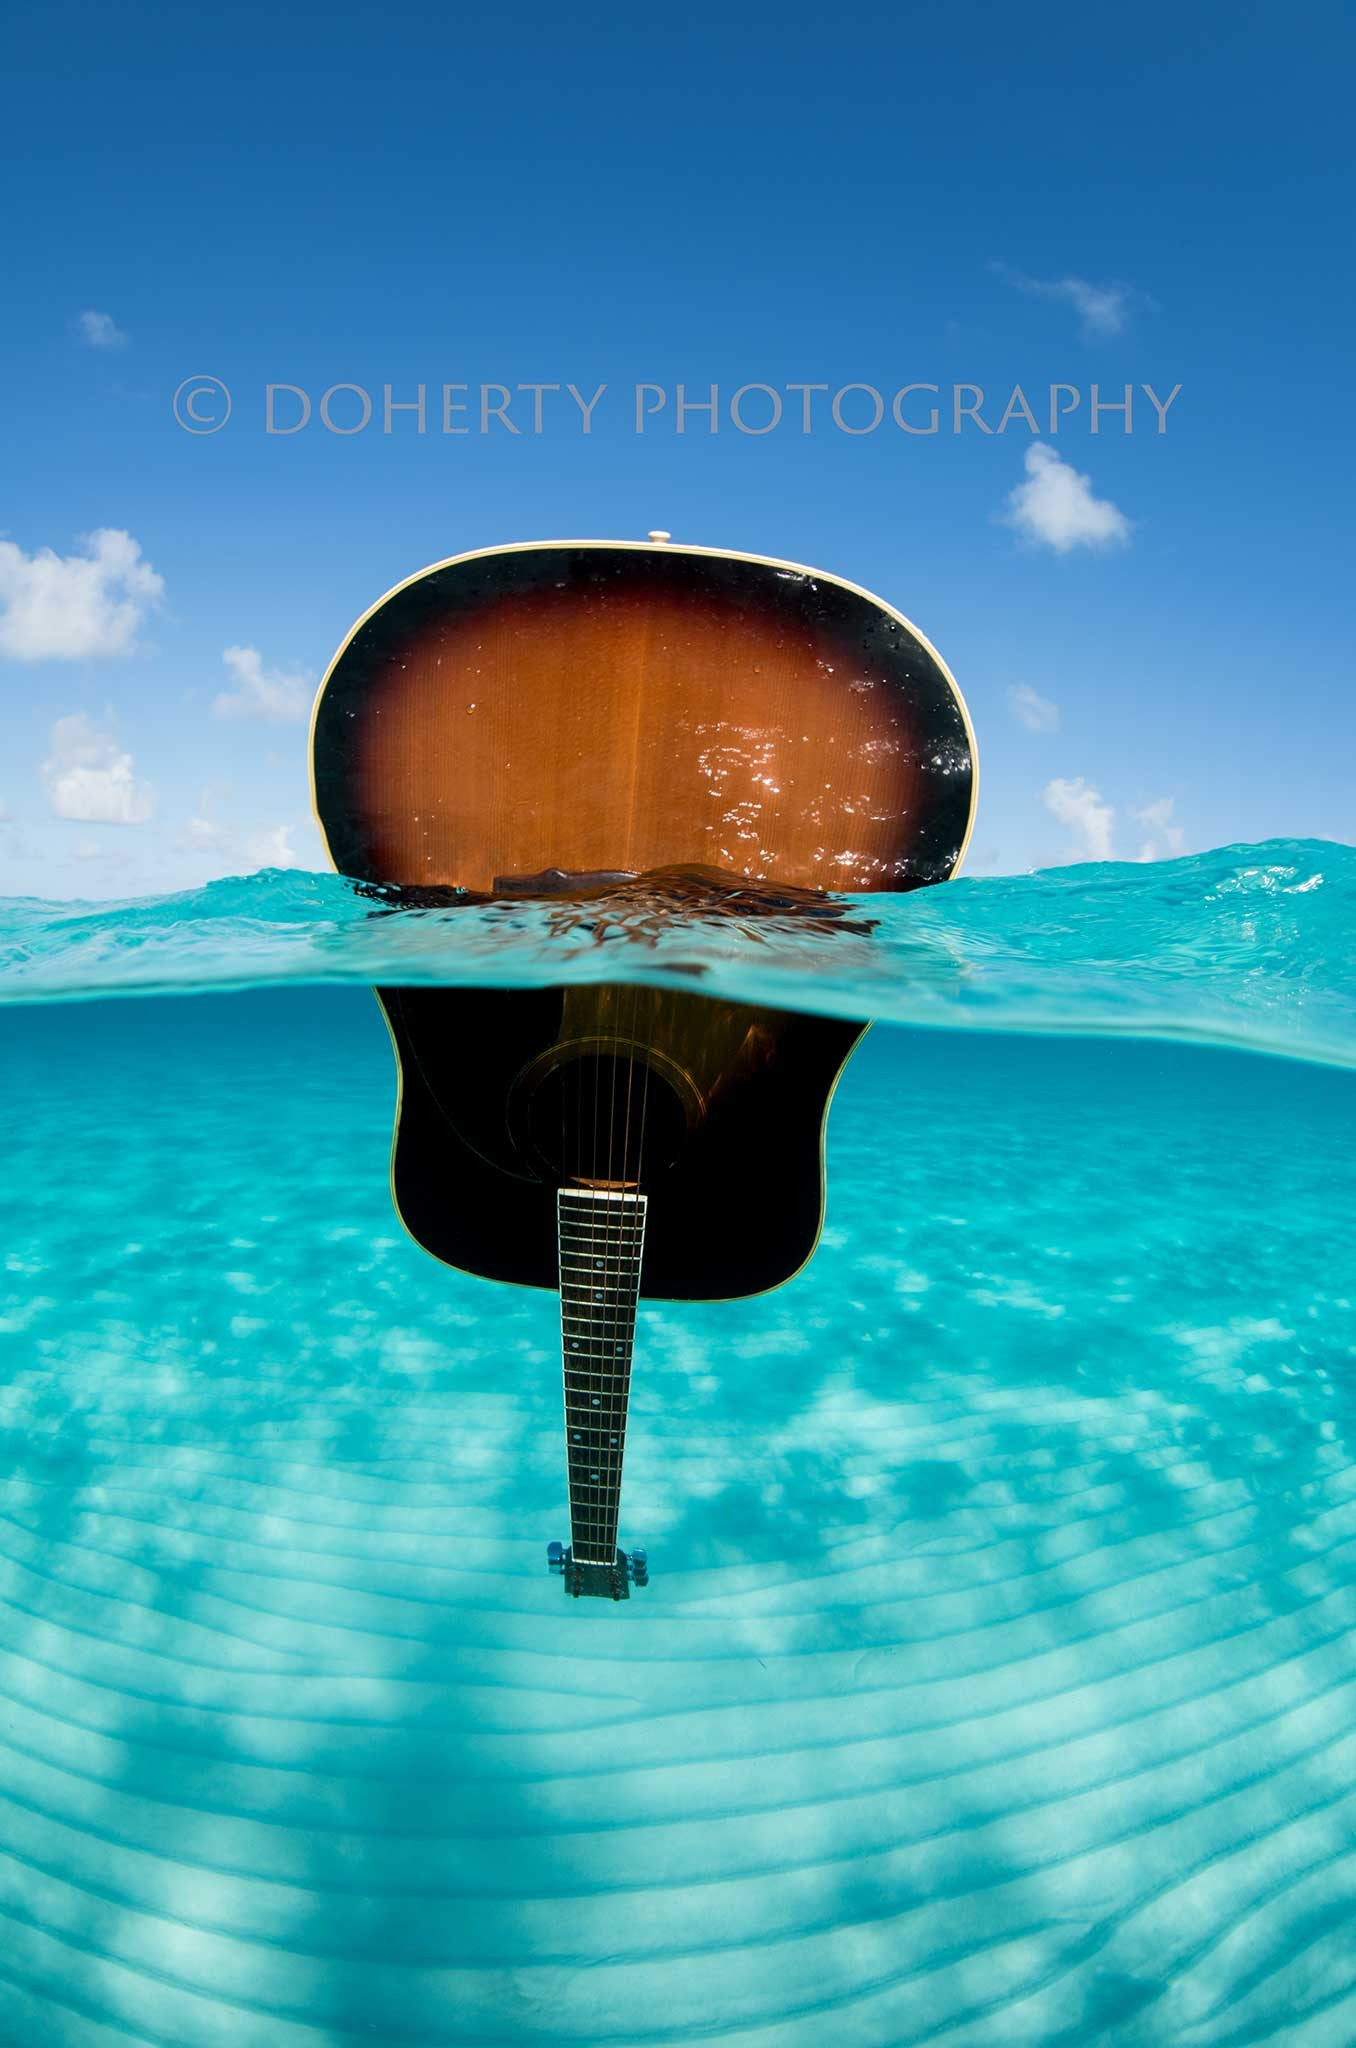 Bobbin' Along - Doherty Photography